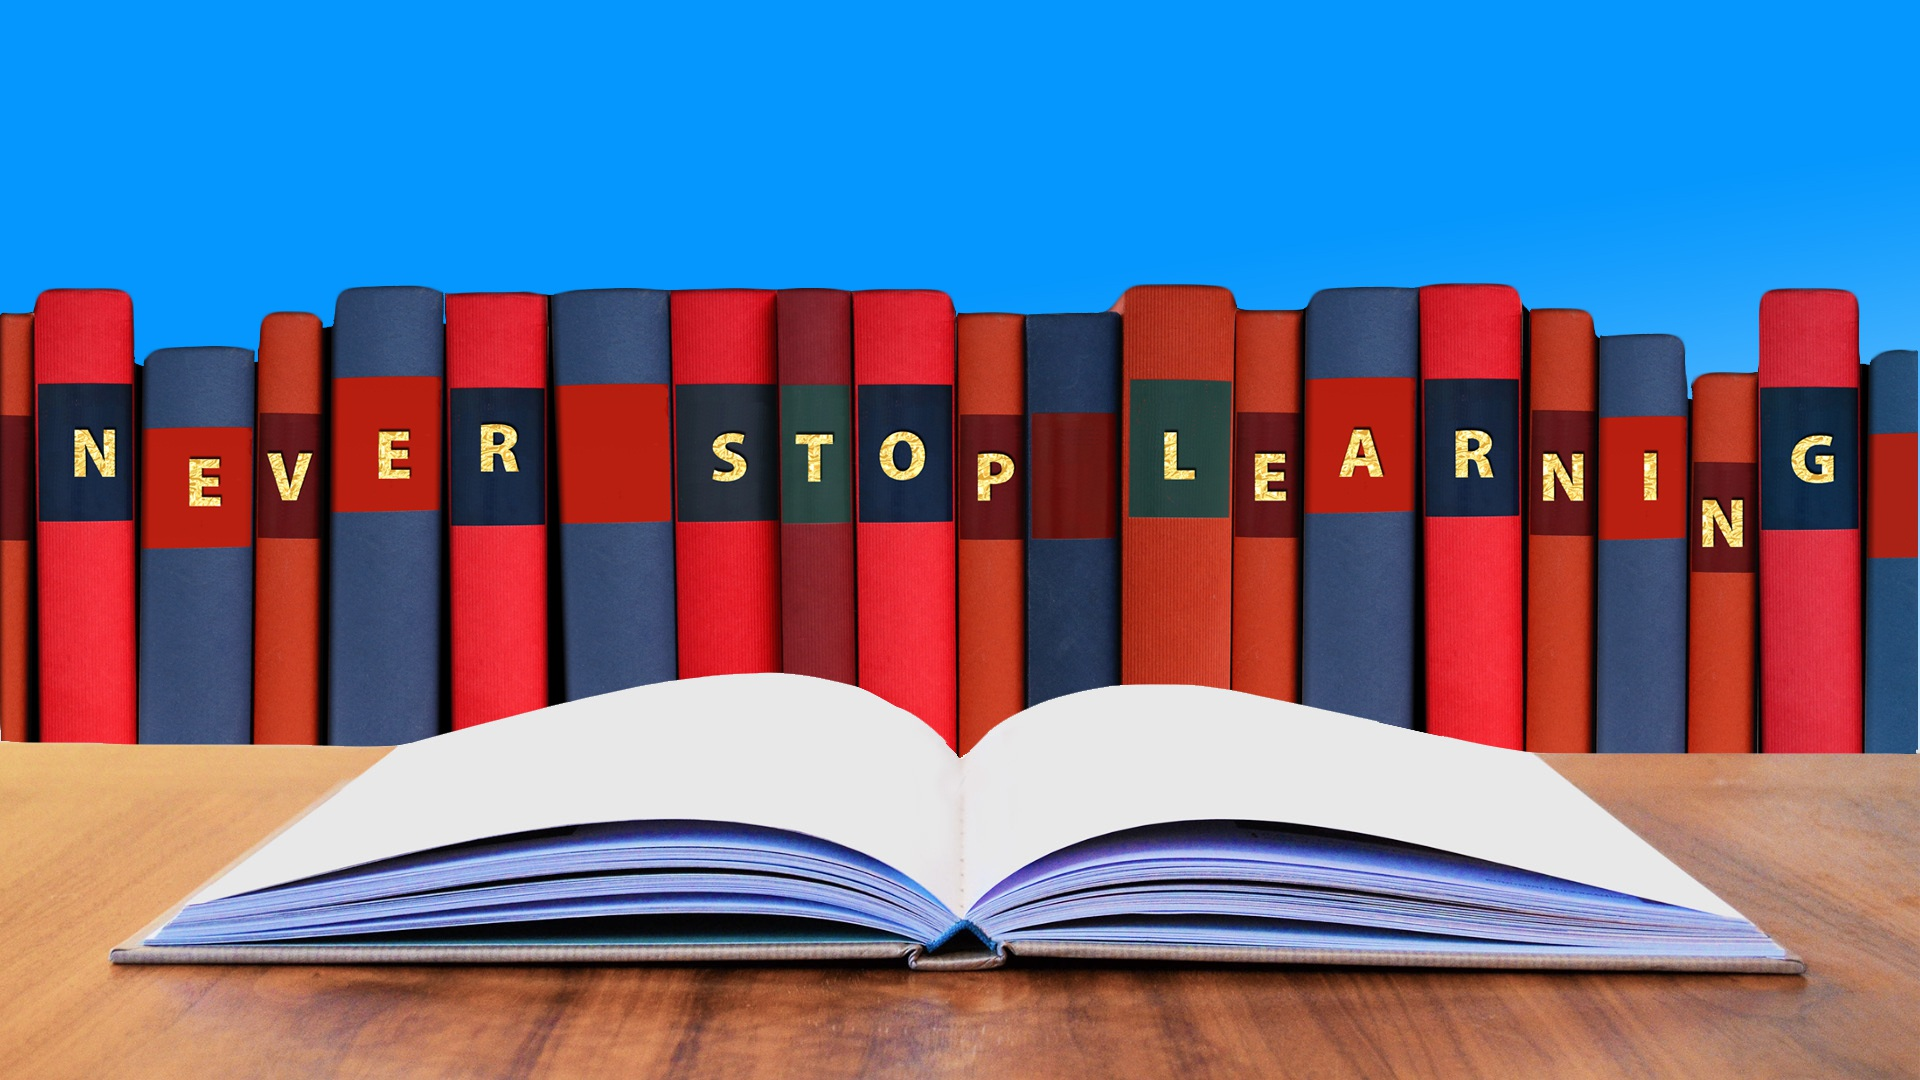 Never Stop Learning   Continued Education   Senior Care Resource Center   Soundview Medical Supply